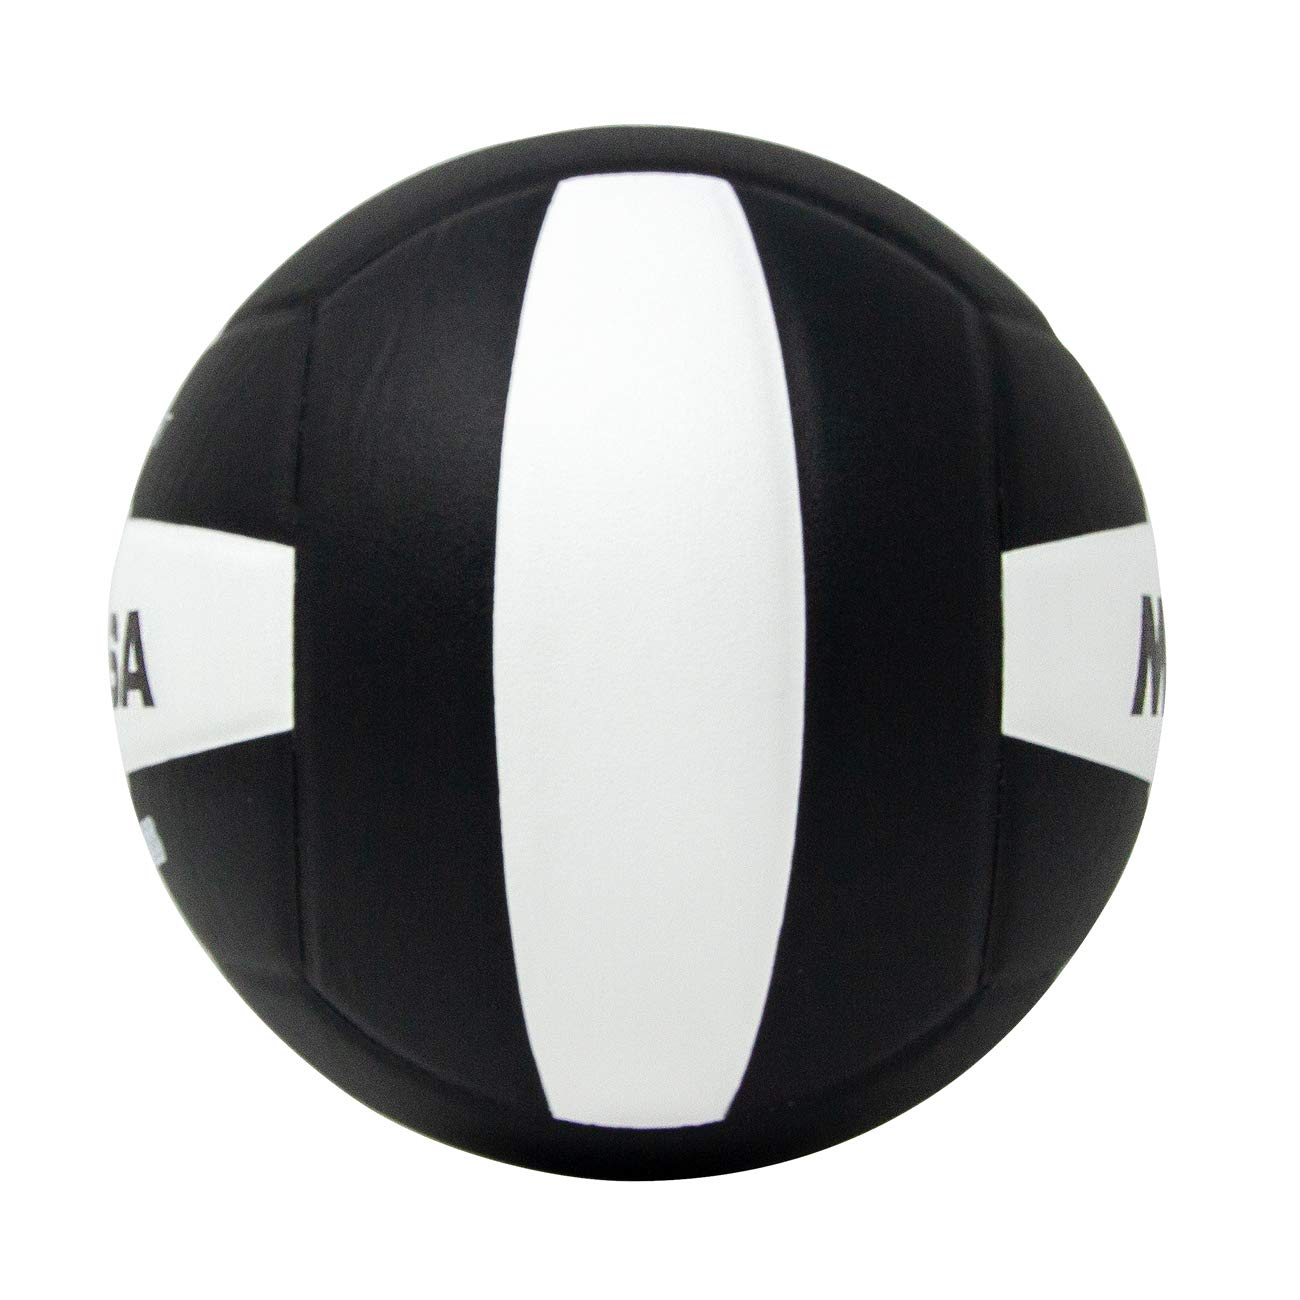 Mikasa MGV500 Heavy Weight Volleyball (Official Size) by Mikasa Sports